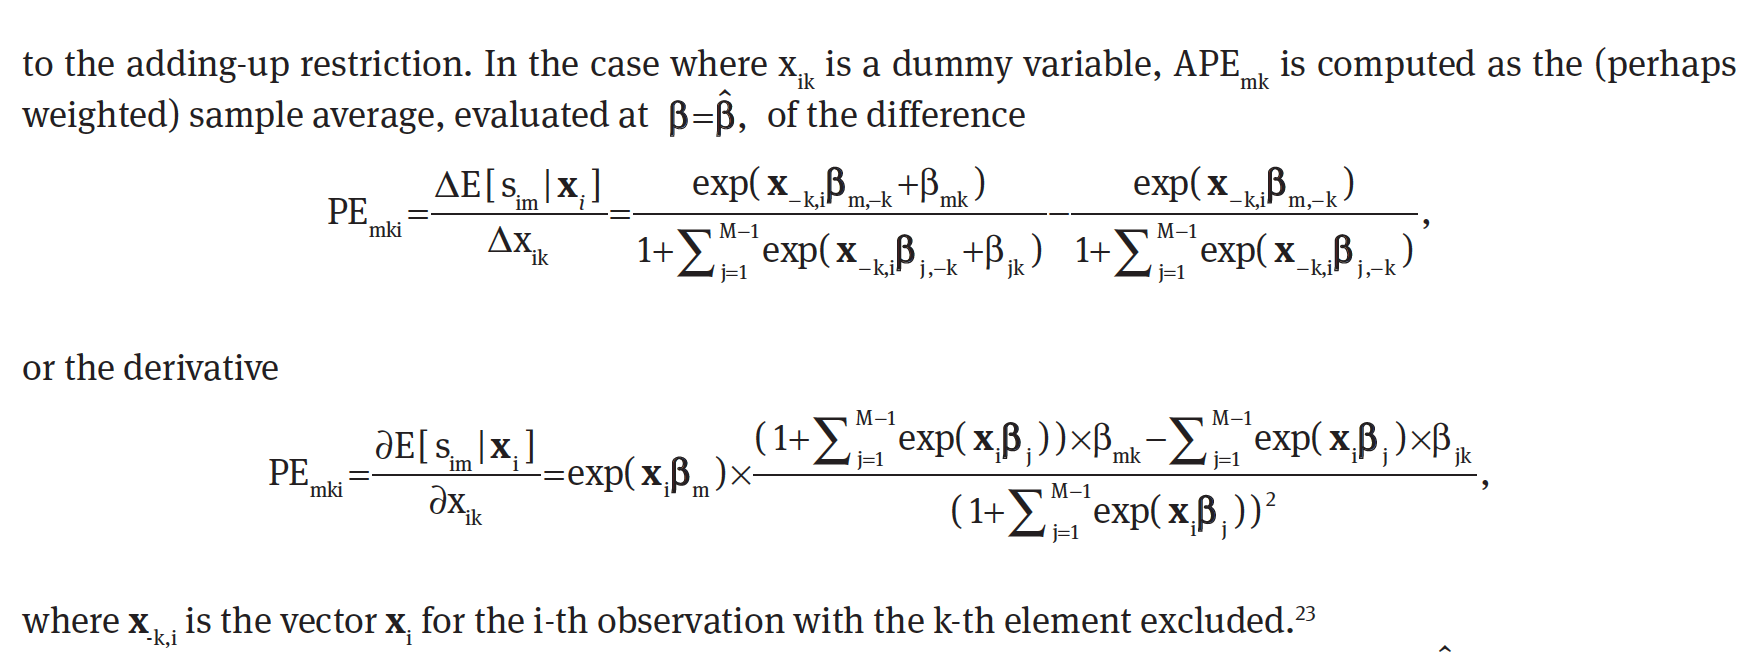 How to interpret an average marginal effect in a multinomial